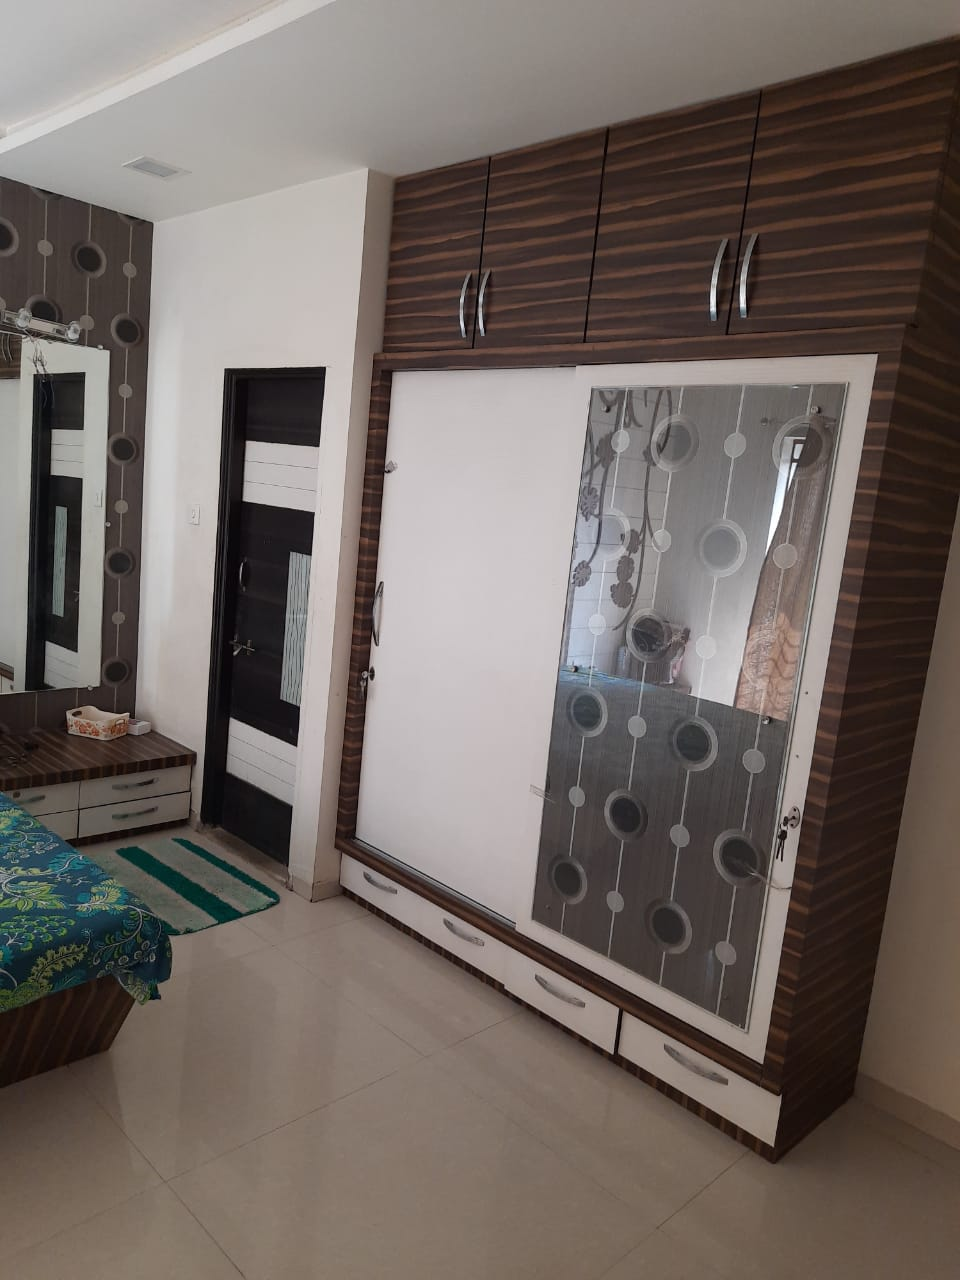 Independent Duplex in Mankapur